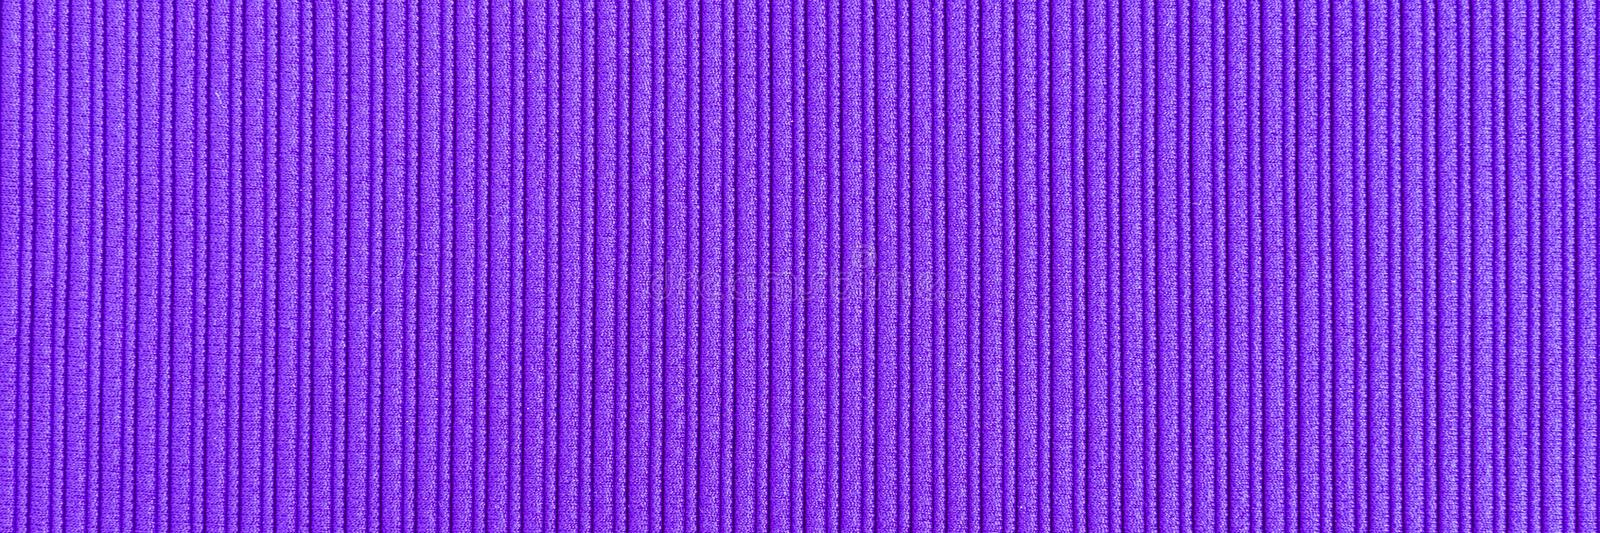 Lilás decorativo do fundo, cor violeta, textura listrada wallpaper Arte Projeto fotos de stock royalty free